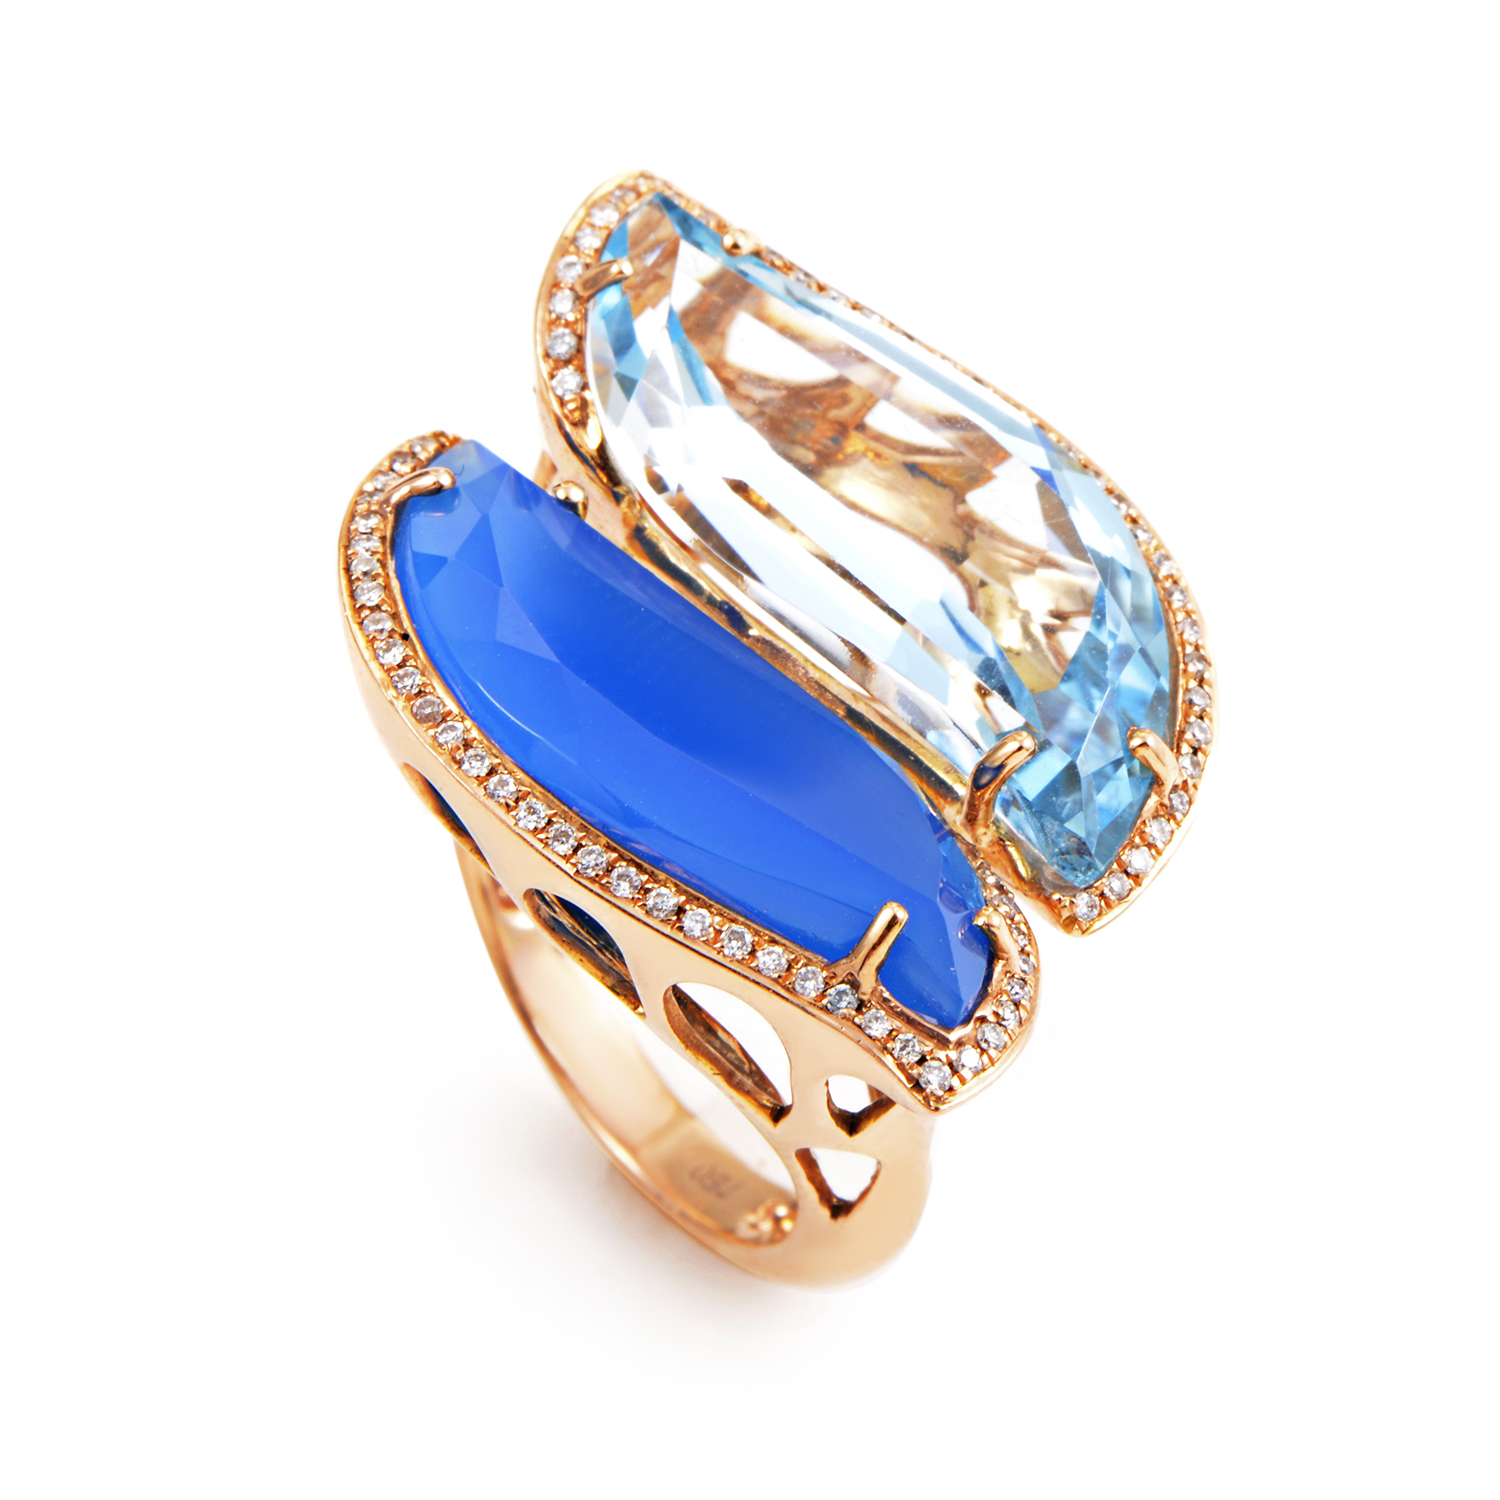 18K Rose Gold Blue Gemstone & Diamond Ring 180-13380